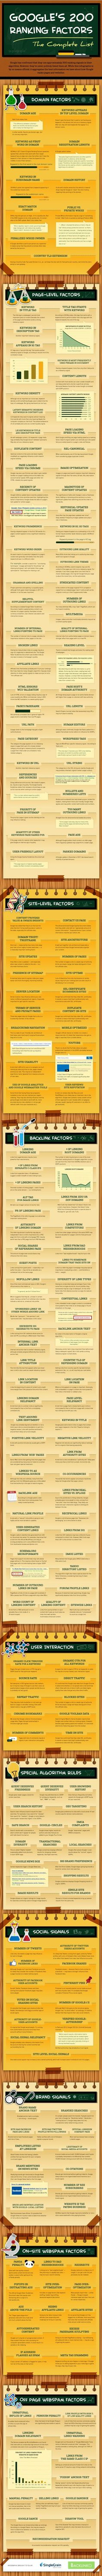 Google's 200 Ranking Factors - The Complete List - #infographic